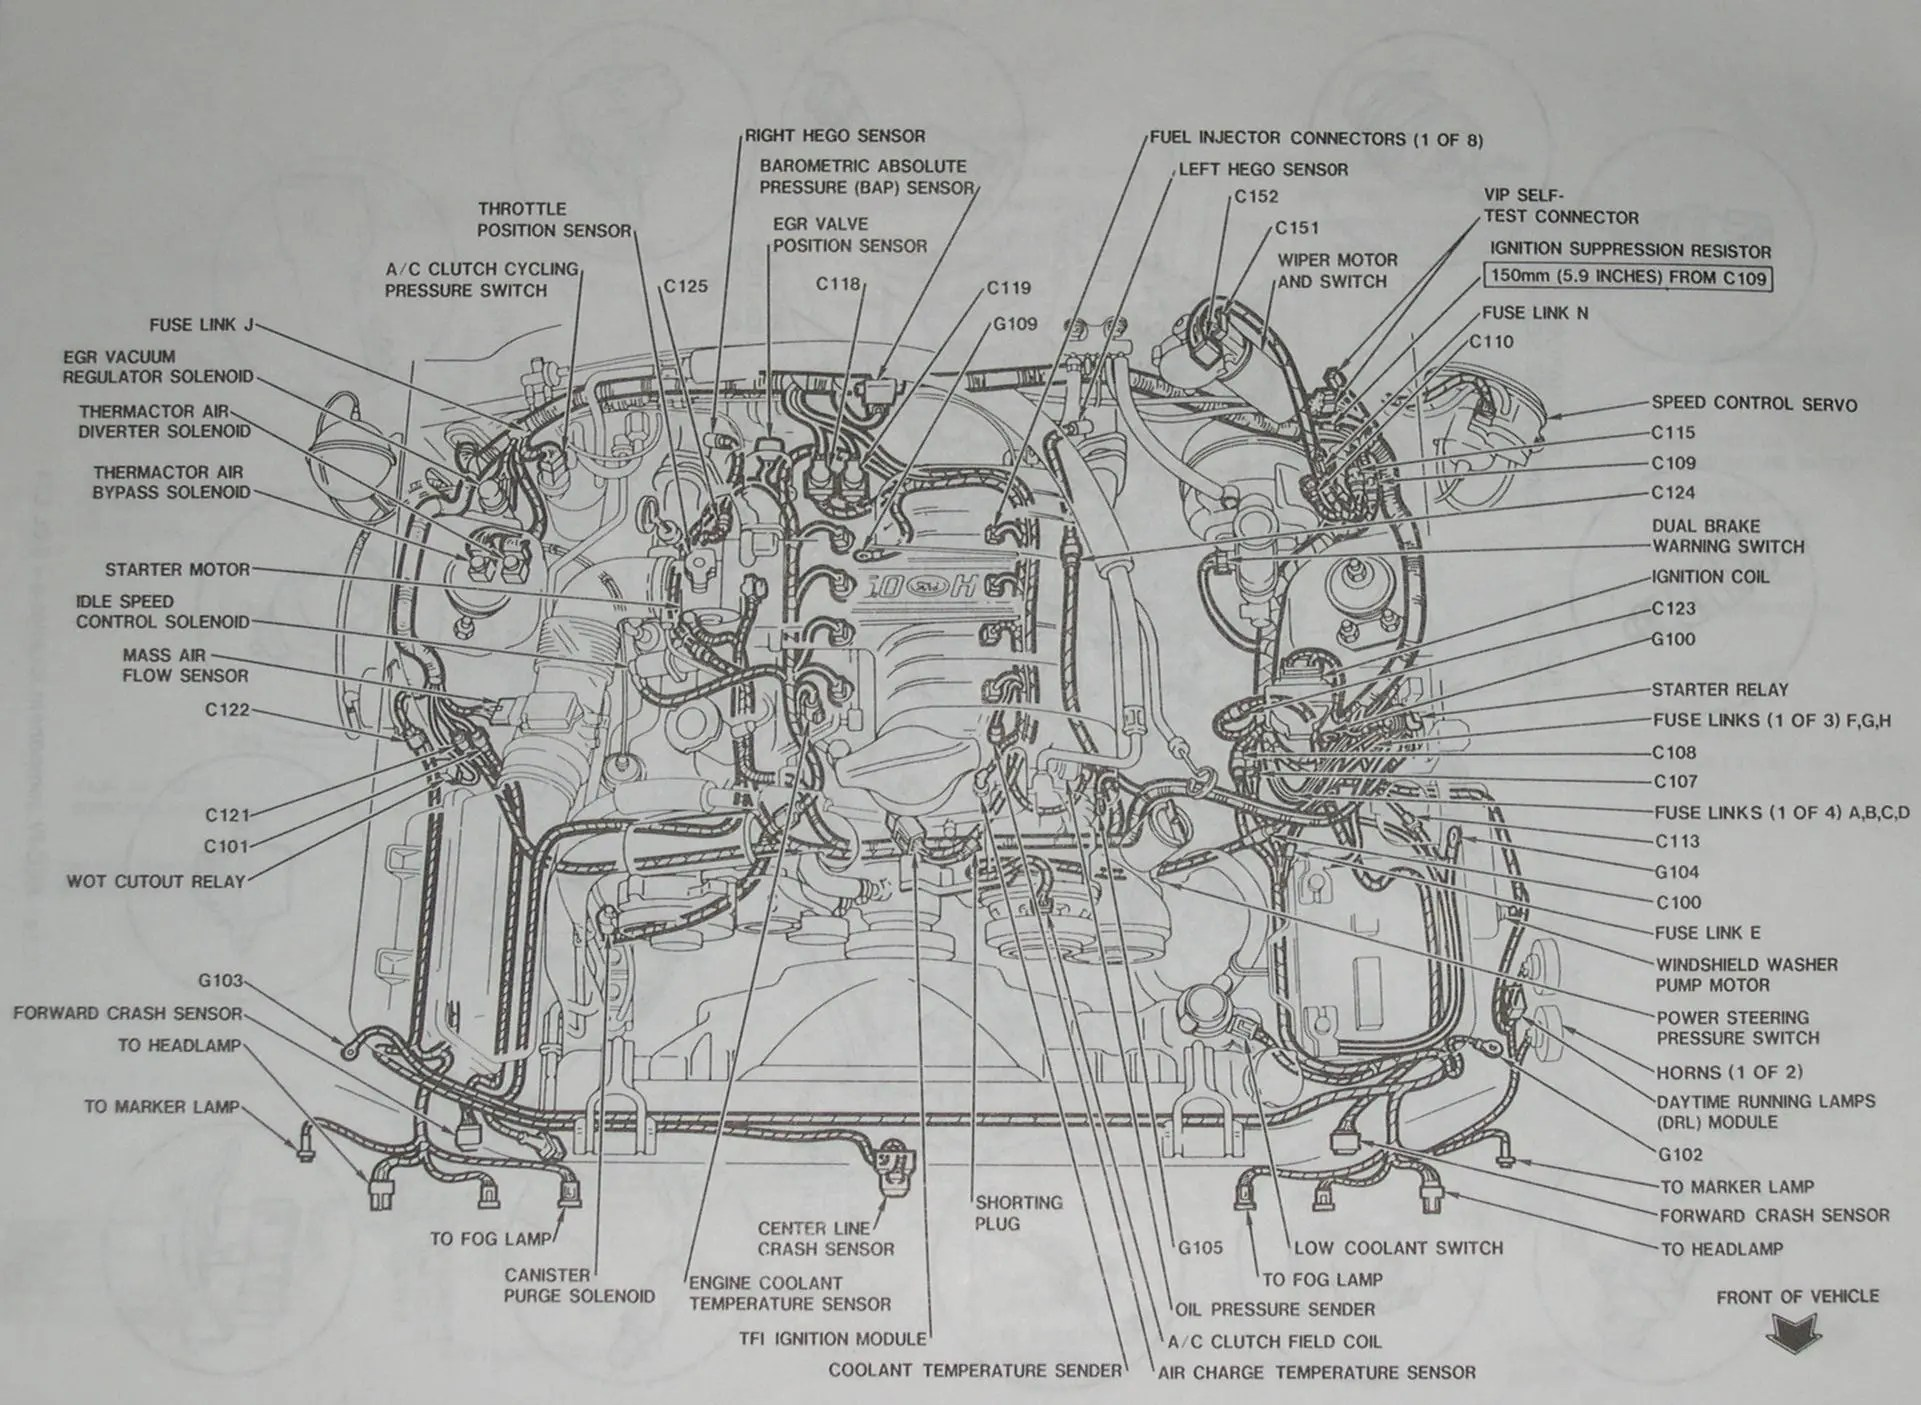 hight resolution of 94 95 mustang 5 0 detailed mustang engine layout